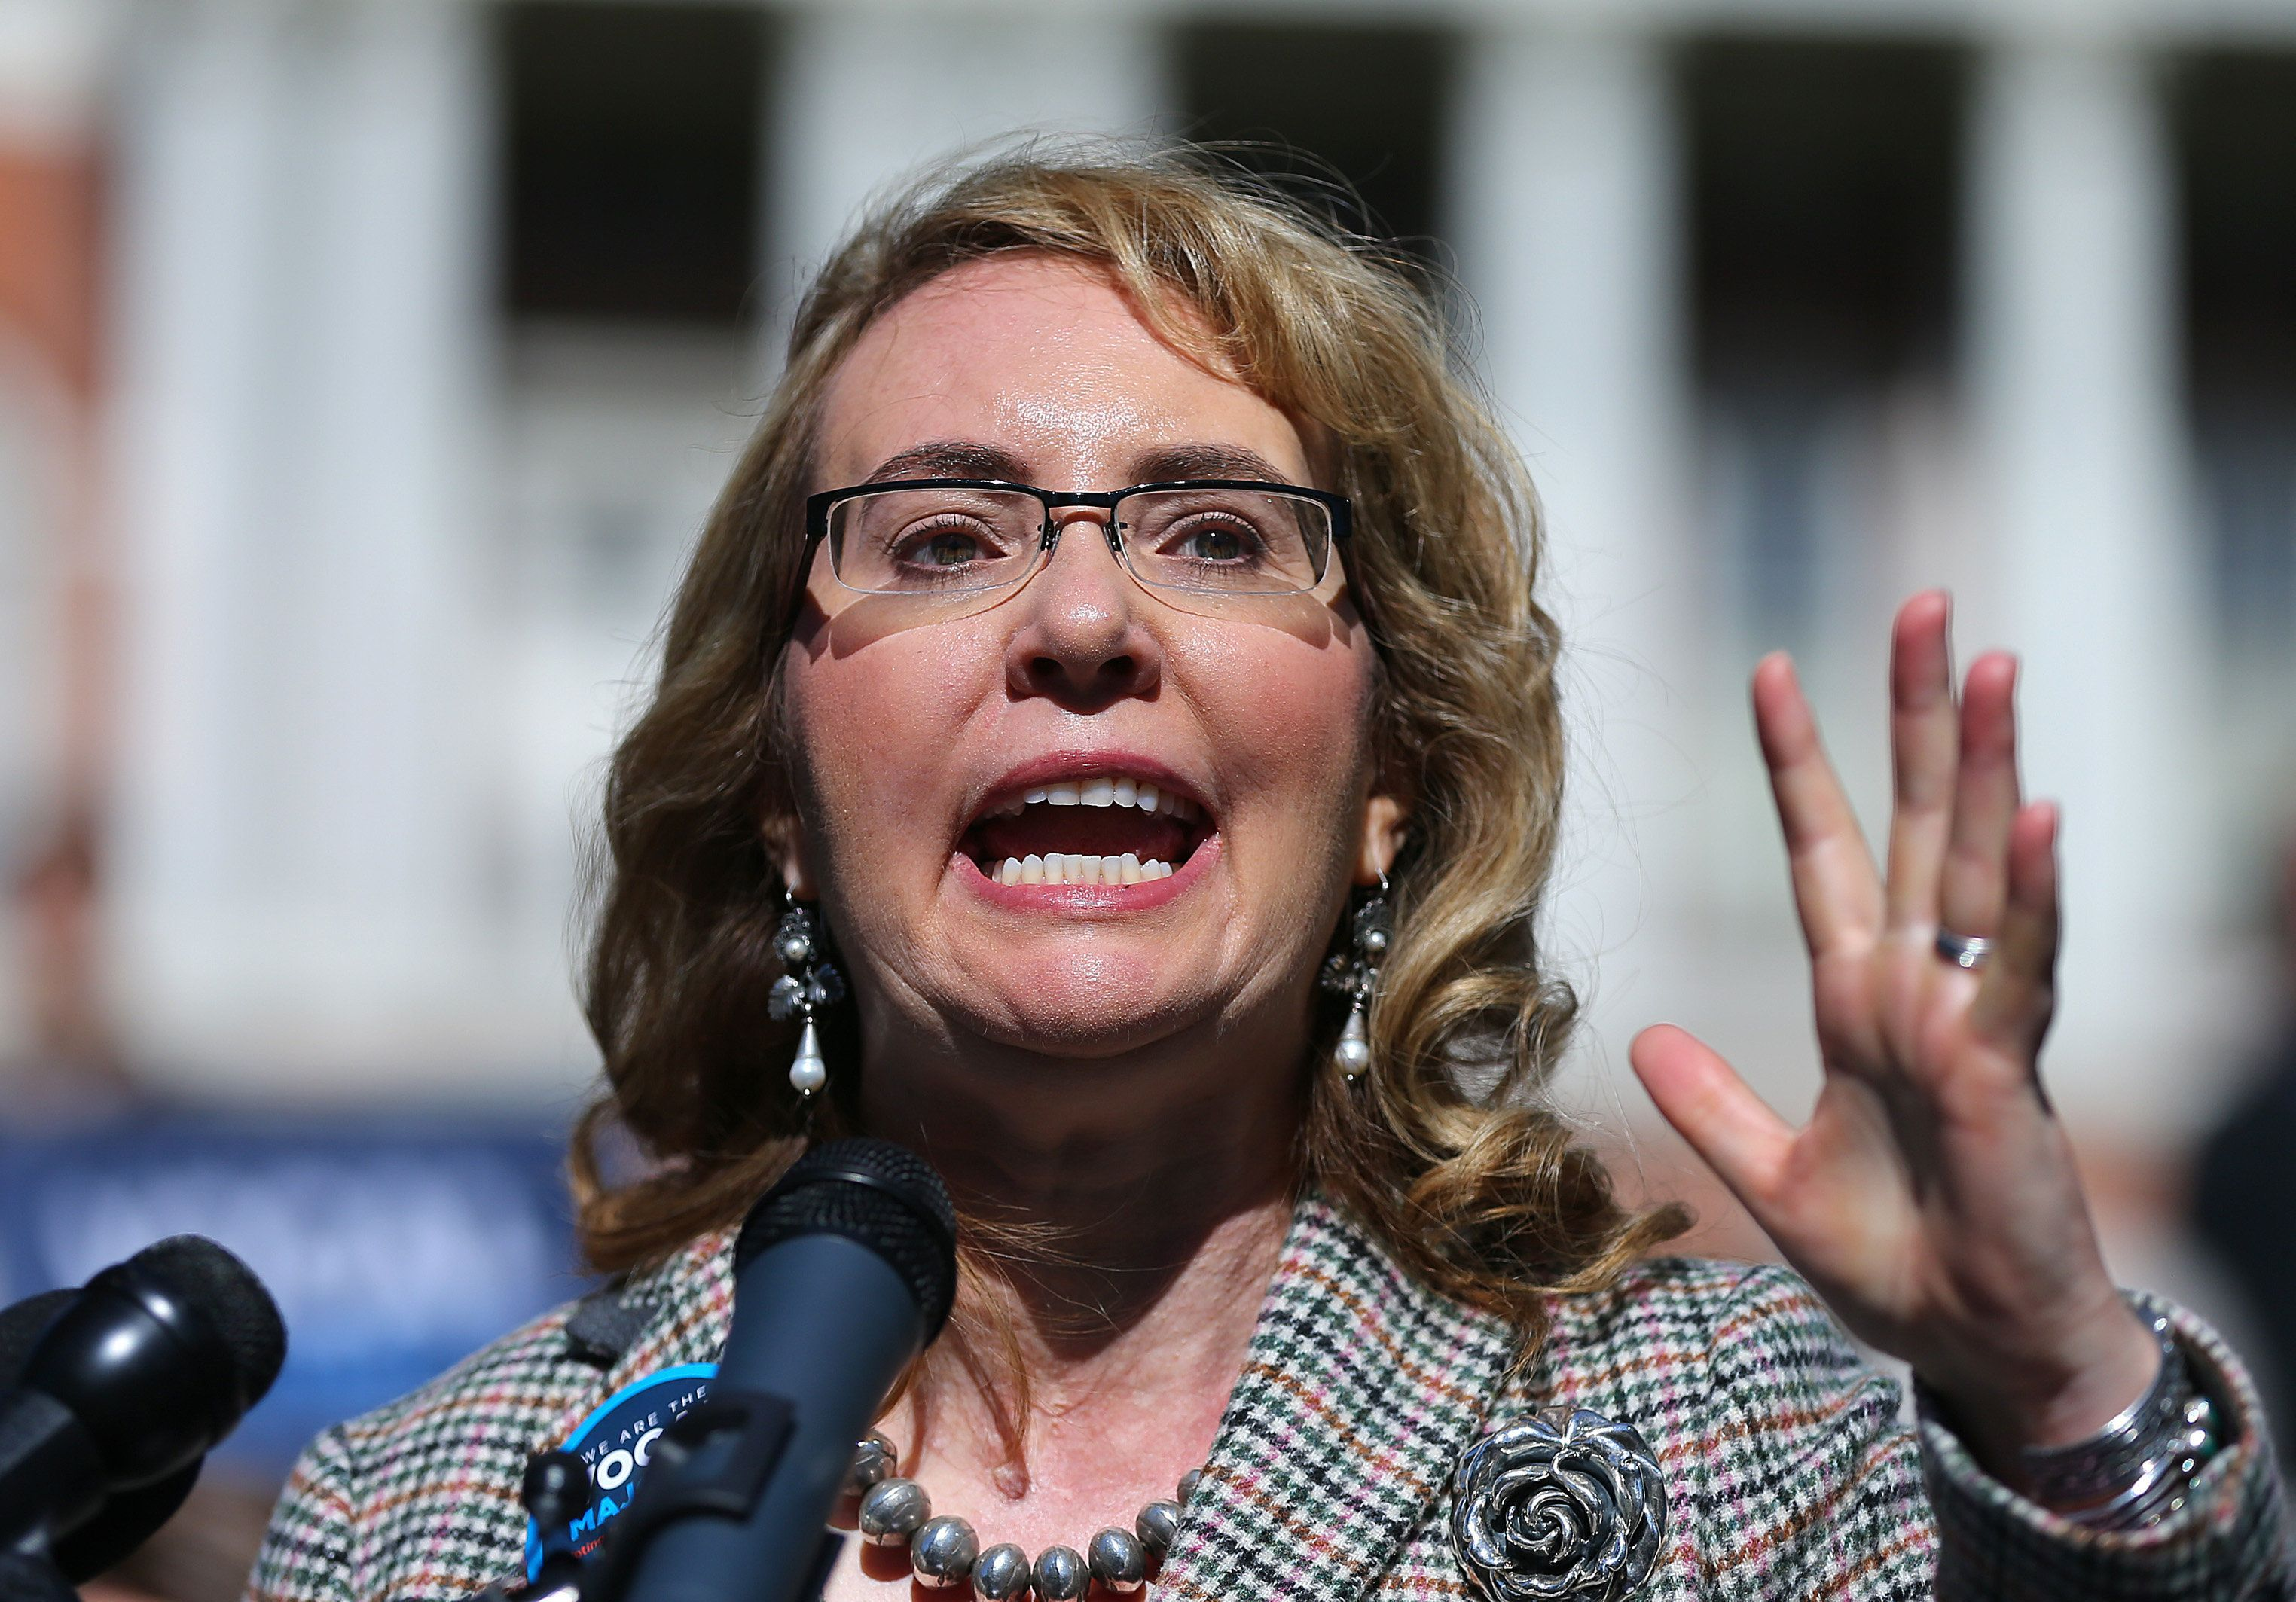 BOSTON   OCTOBER 14: Congresswoman Gabrielle Giffords Addresses A Crowd  During A Rally For Gun